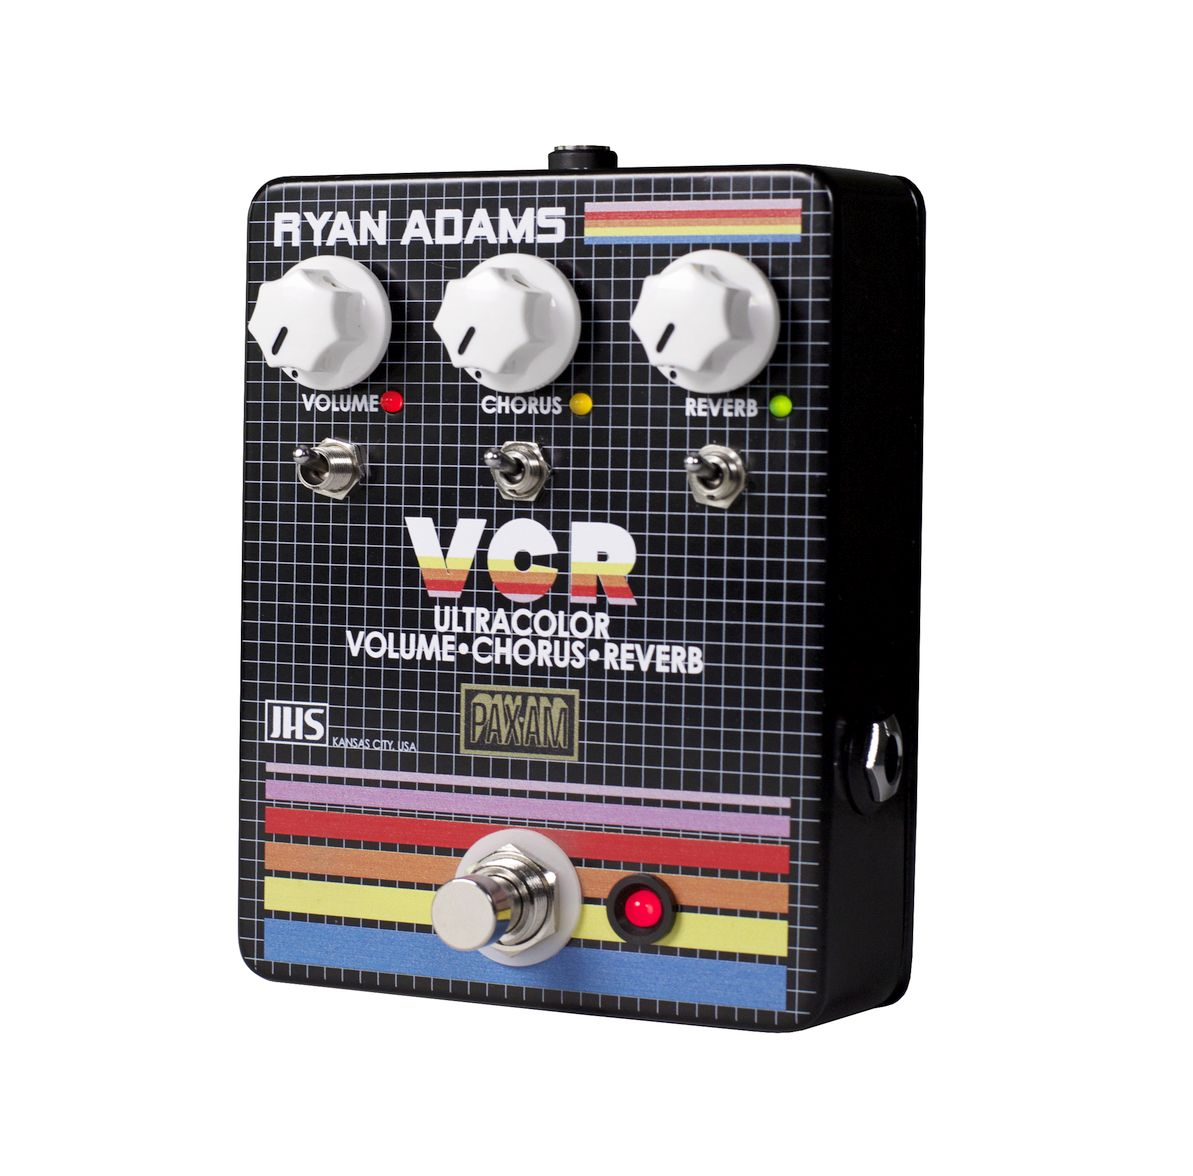 JHS-Pedals-VCR-Side-view